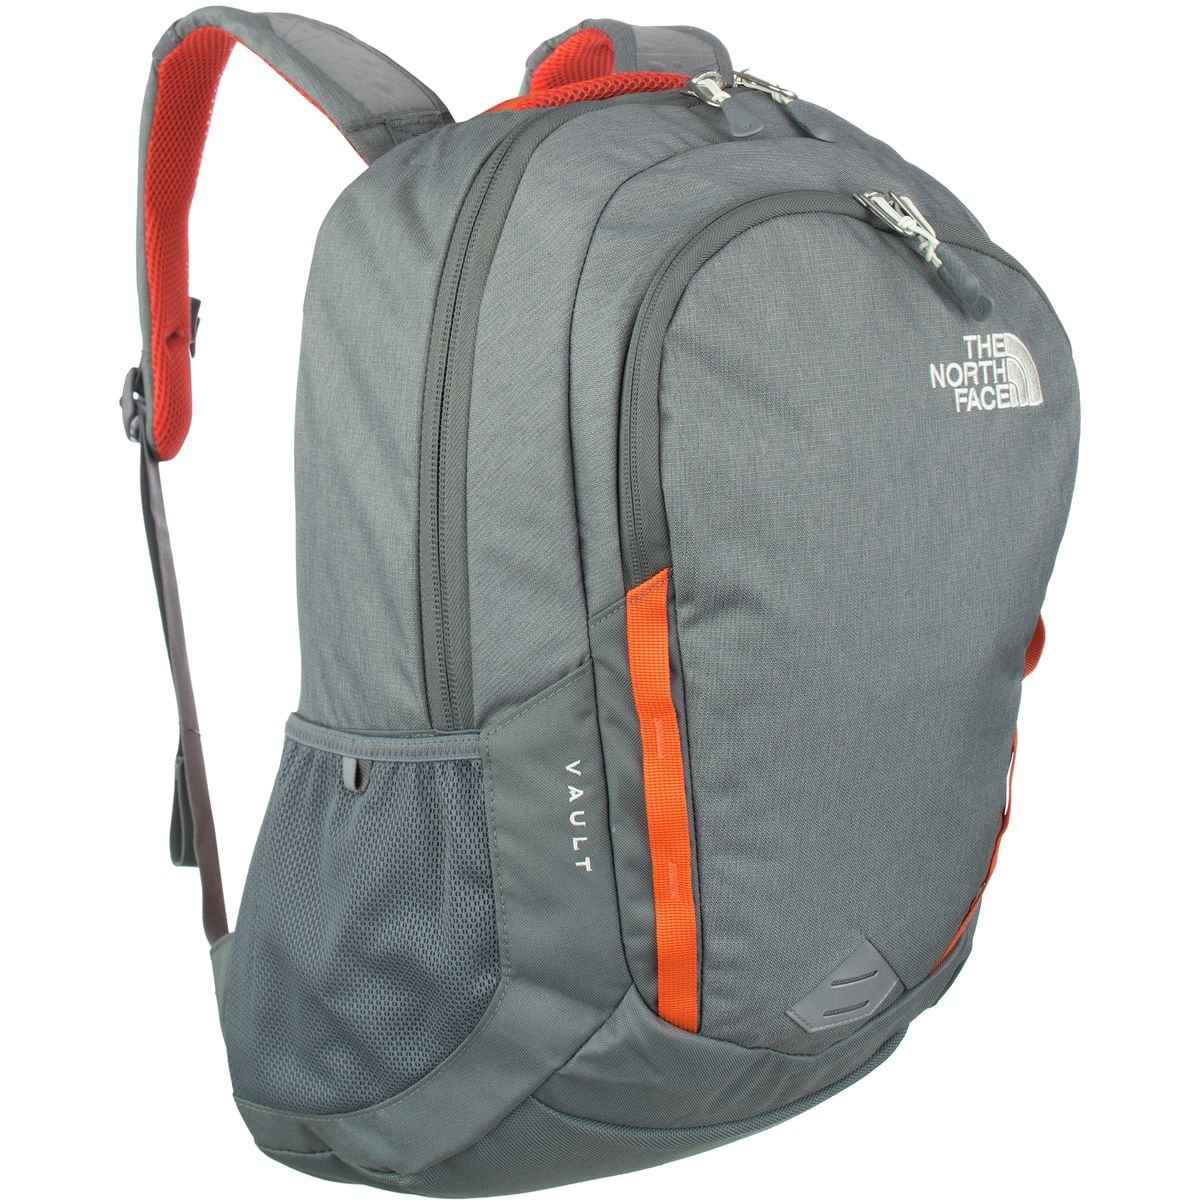 08a2389a249ee North Face Vault Backpack Orange- Fenix Toulouse Handball